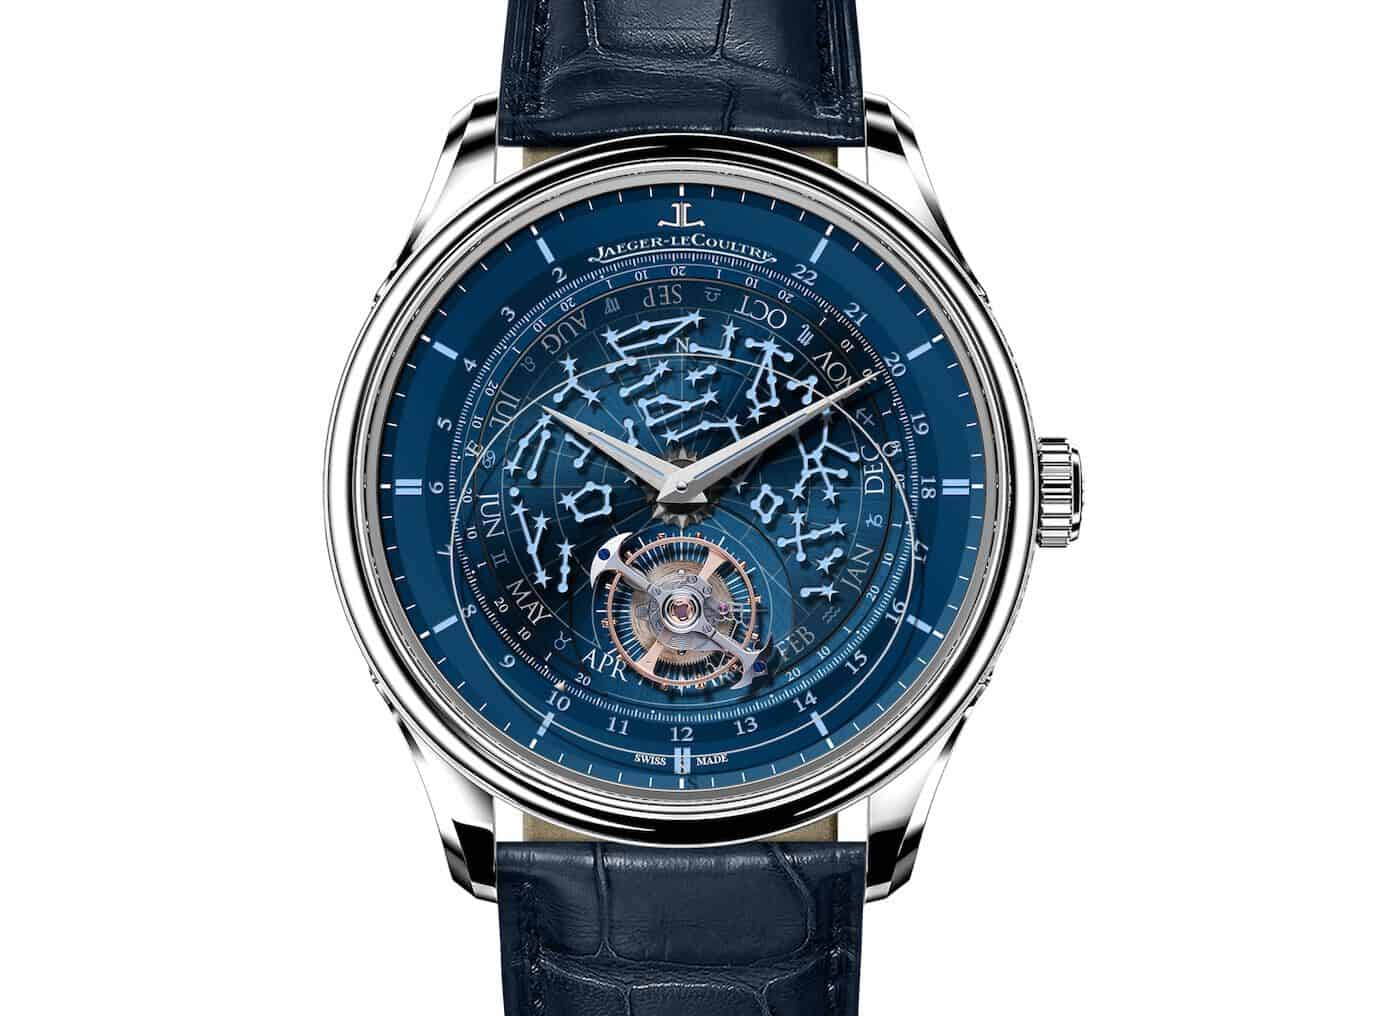 Jaeger LeCoultre Master Grande Tradition Tourbillon Céleste Watch 3